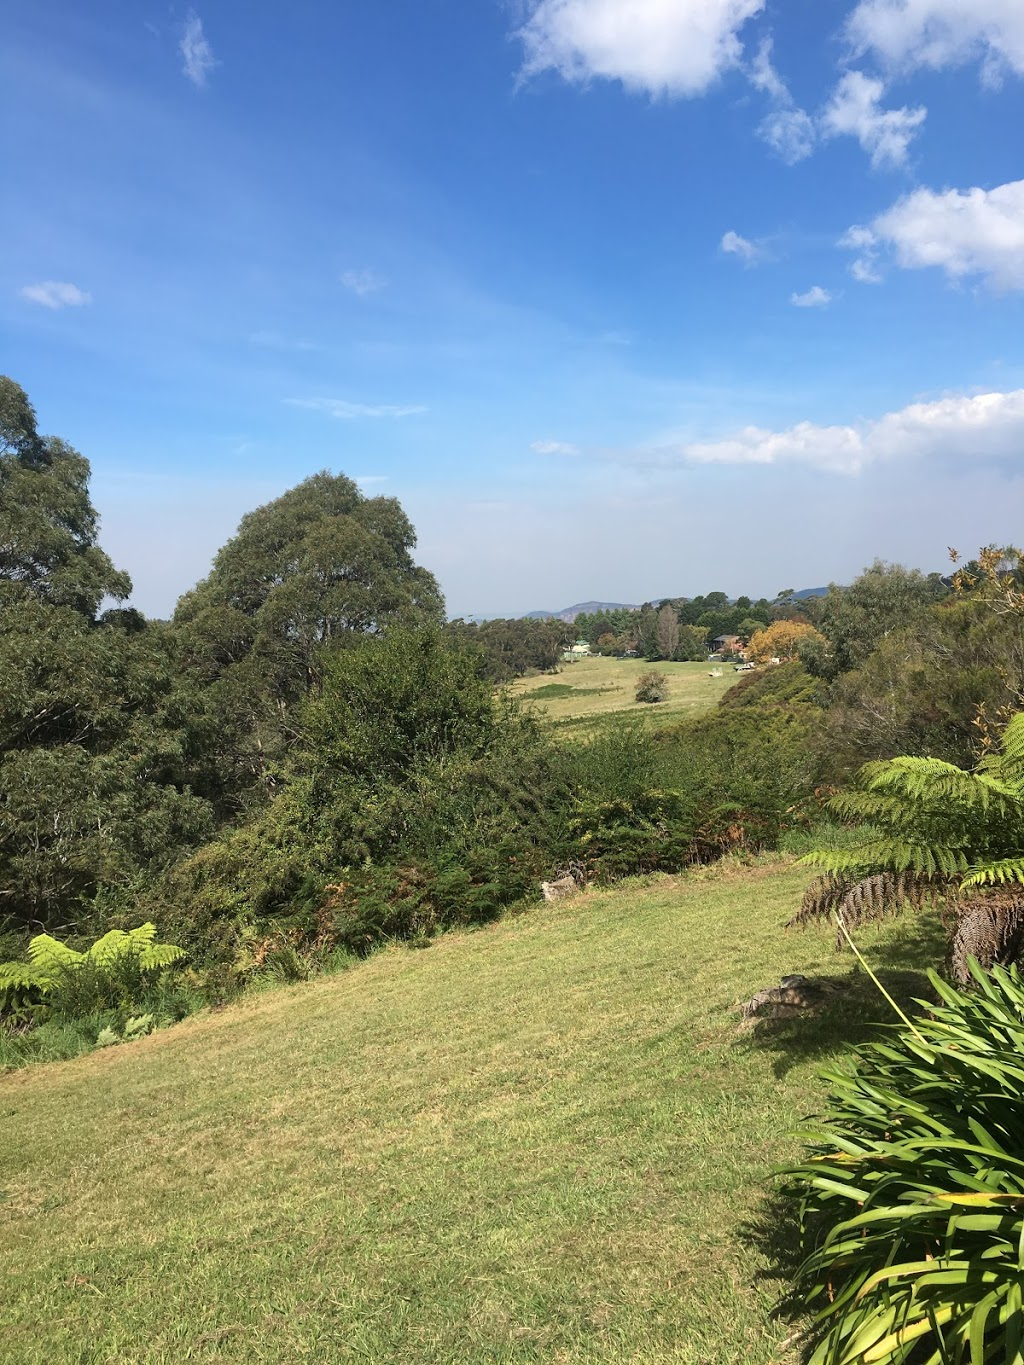 Tranquility House with Views Cottage | lodging | 94 Narrow Neck Rd, Katoomba NSW 2780, Australia | 0418286064 OR +61 418 286 064